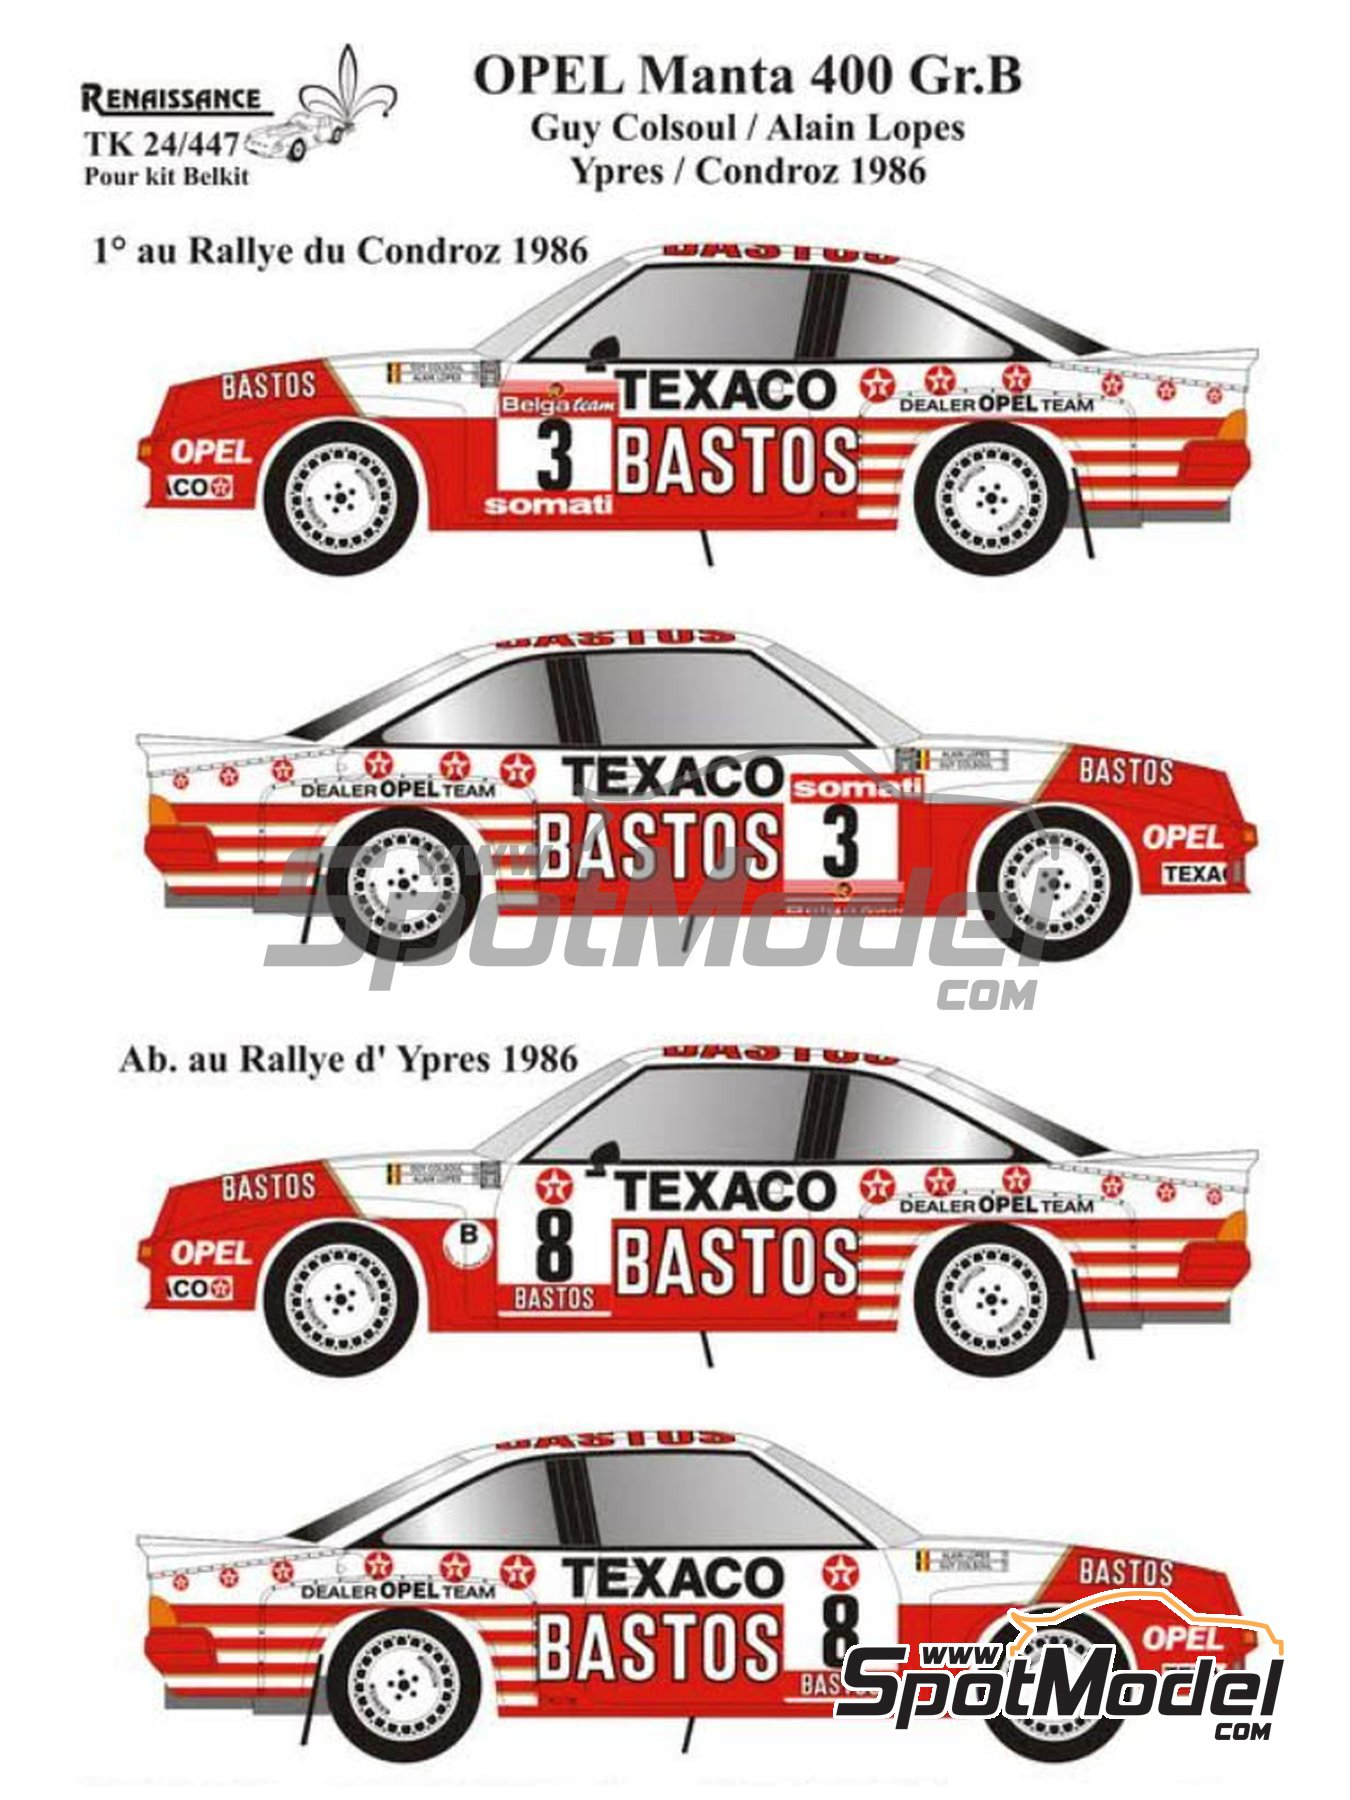 Opel Manta 400 Group B Texaco Bastos - Condroz Rally, Ypres Rally 1986 | Marking / livery in 1/24 scale manufactured by Renaissance Models (ref. TK24-447) image